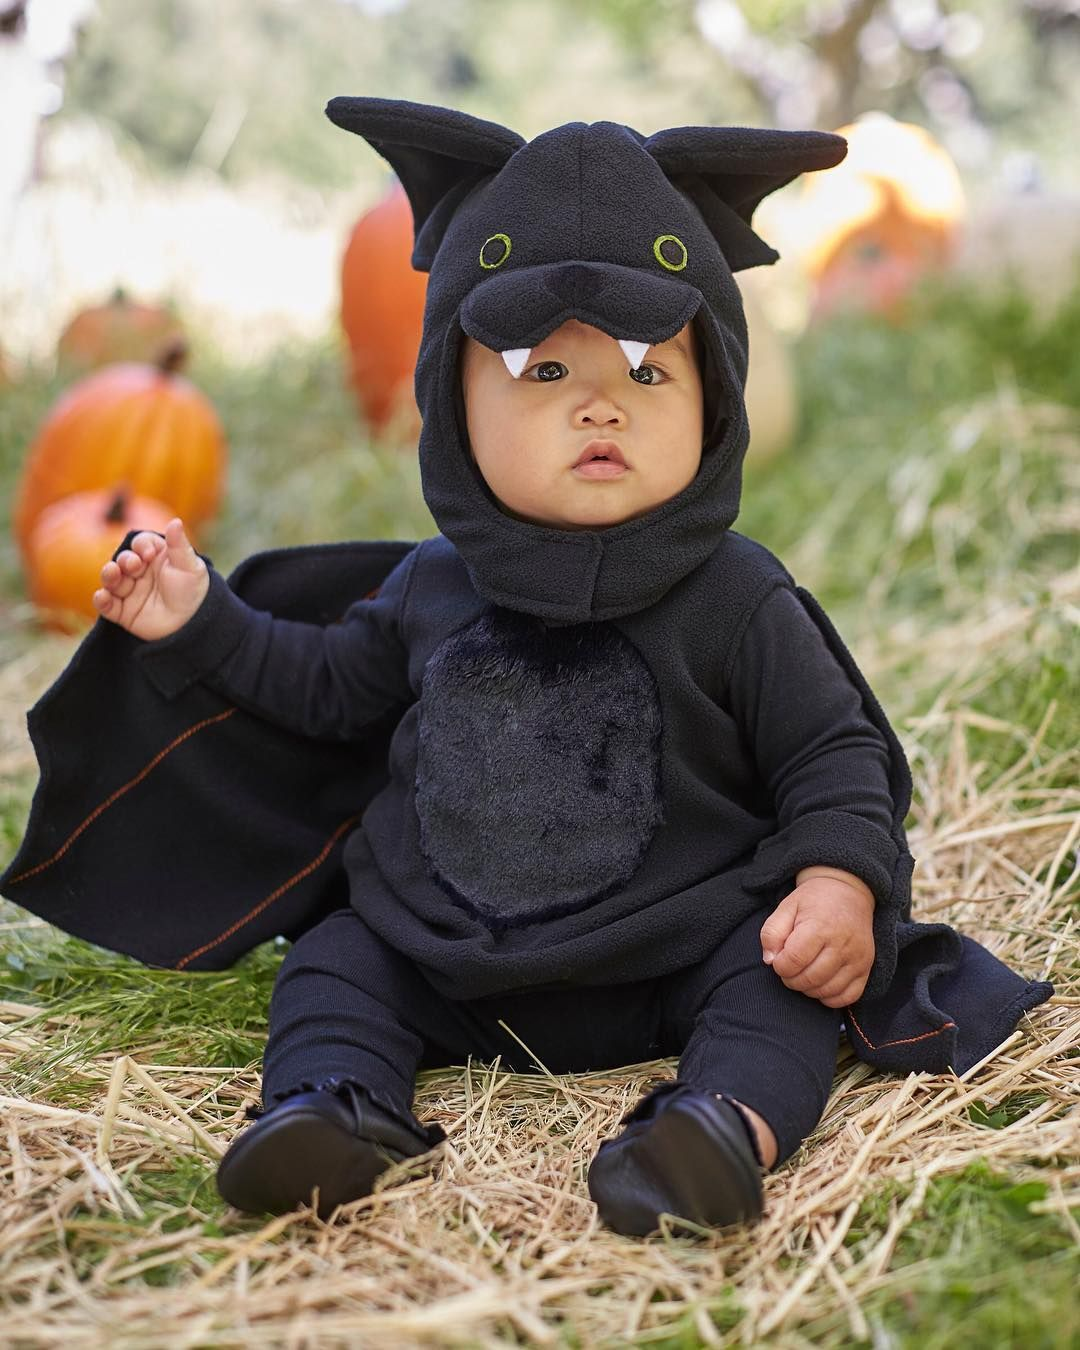 The Best Halloween Costumes for Babies, Toddlers & Kids